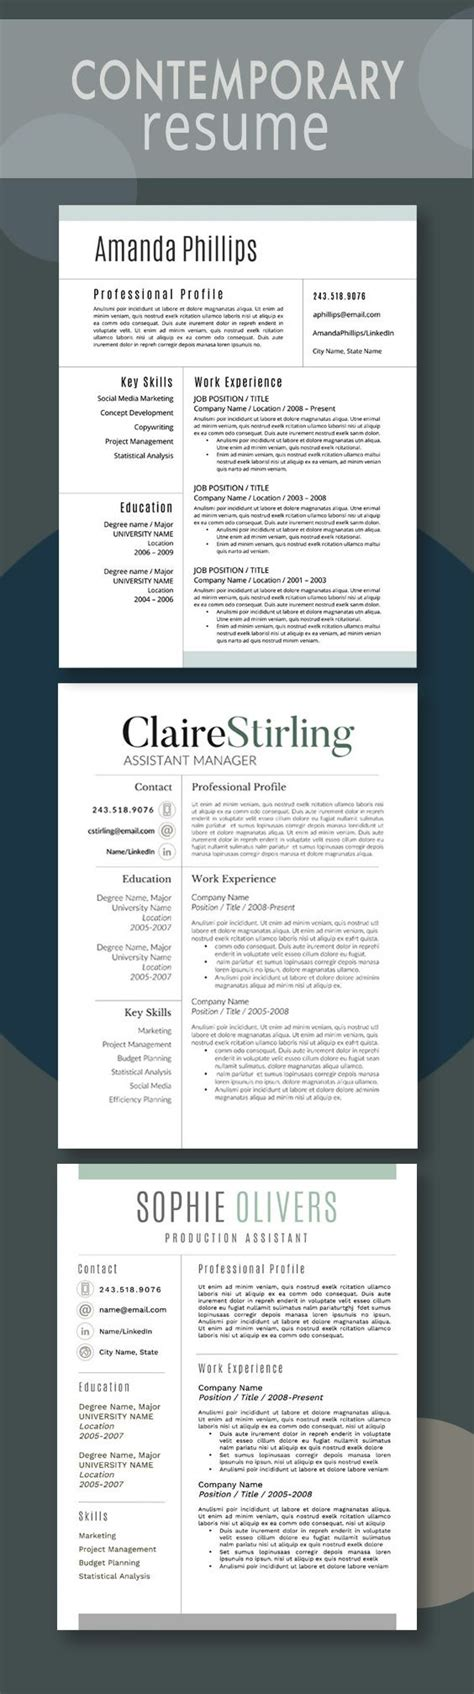 Resume Help Microsoft Word by Happy With My Resume Template Great Service Easy